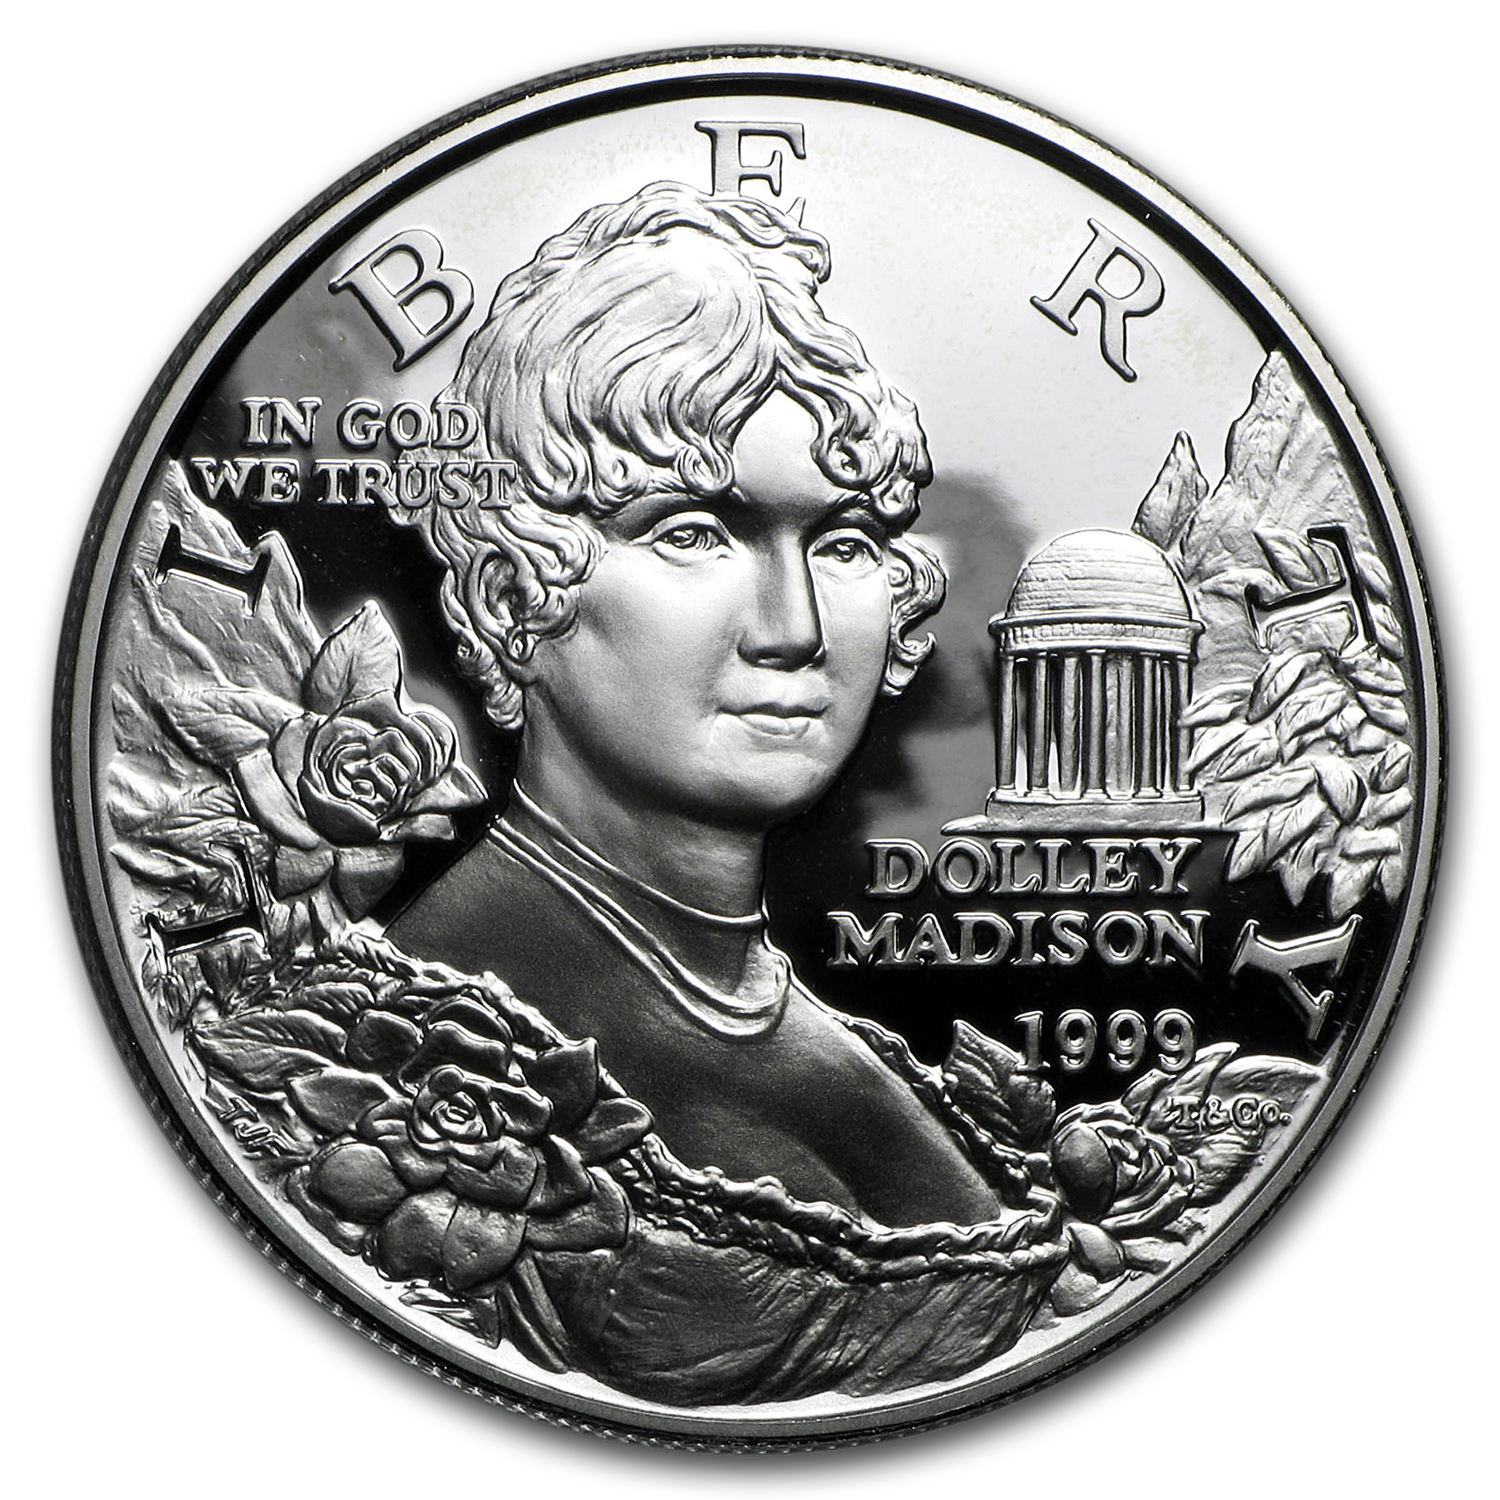 1999-P Dolley Madison $1 Silver Commem Proof (w/Box & COA)